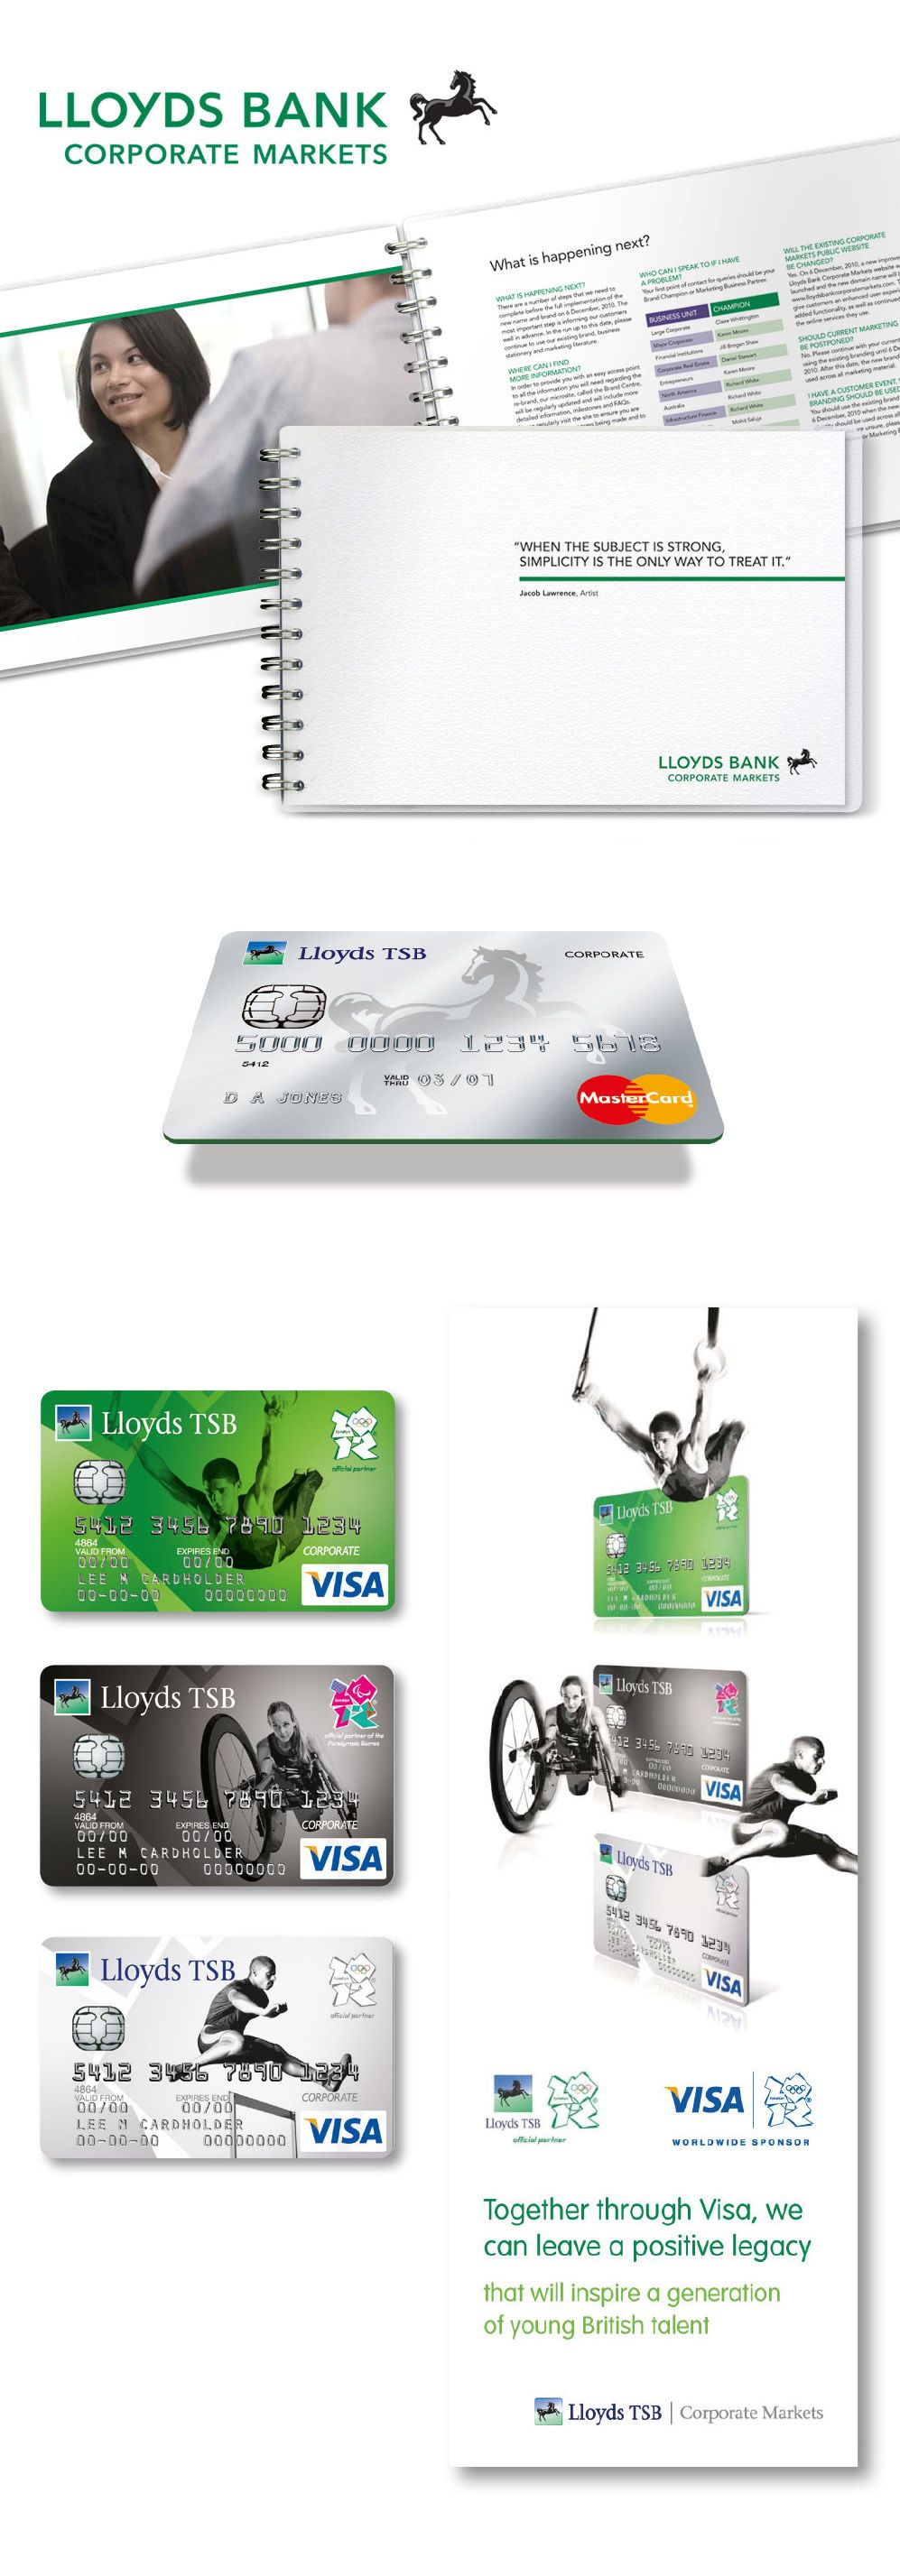 Lloyds Bank Corporate Guide Executive Desk Drop Credit Card Design And Paralympic Card And Marketing Col Credit Card Design Marketing Collateral Card Design